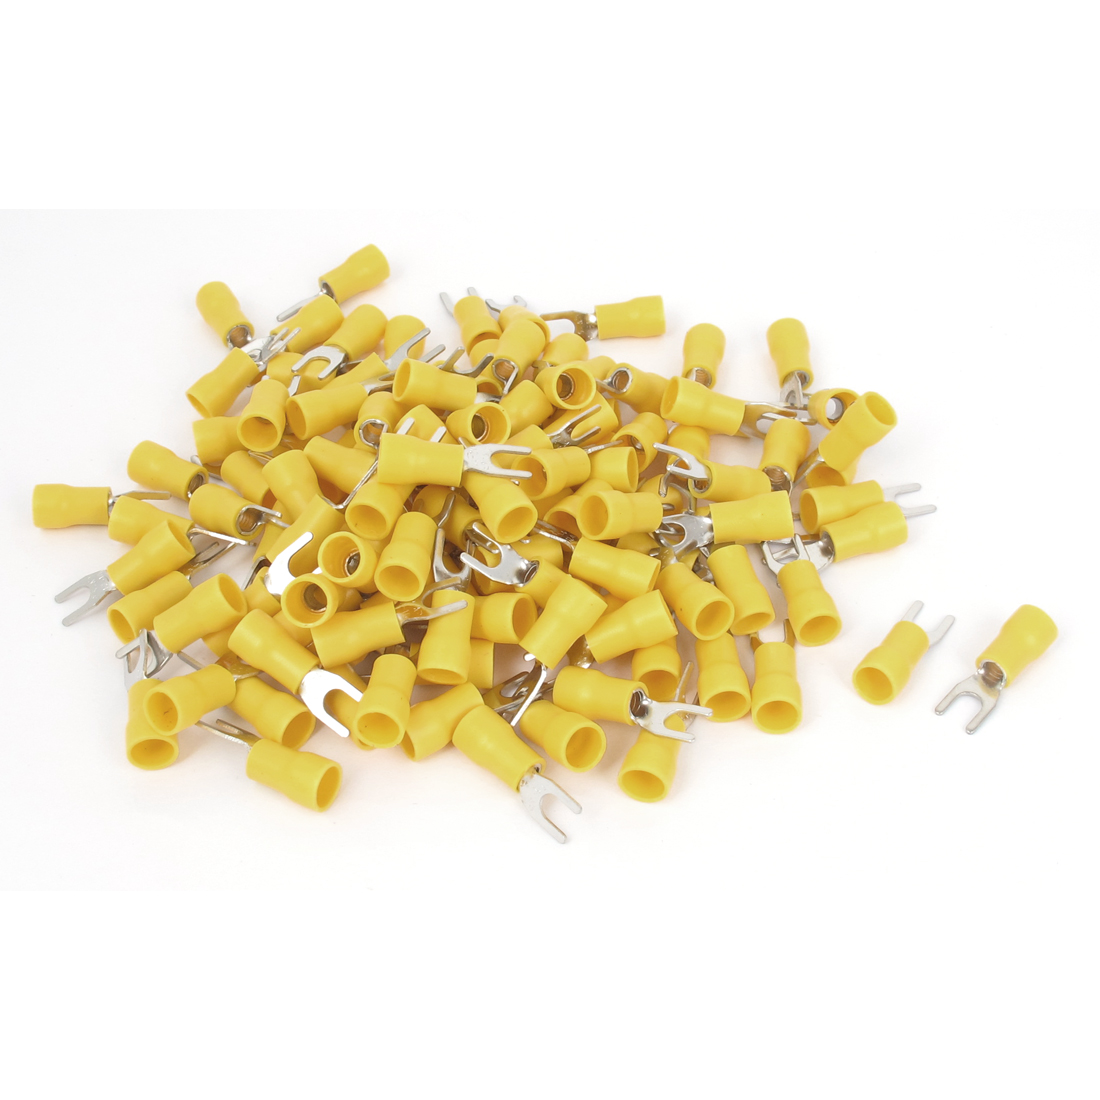 120pcs SVS5.5-4 Fork Insulated Wire Terminal Connectors Yellow for AWG 12-10